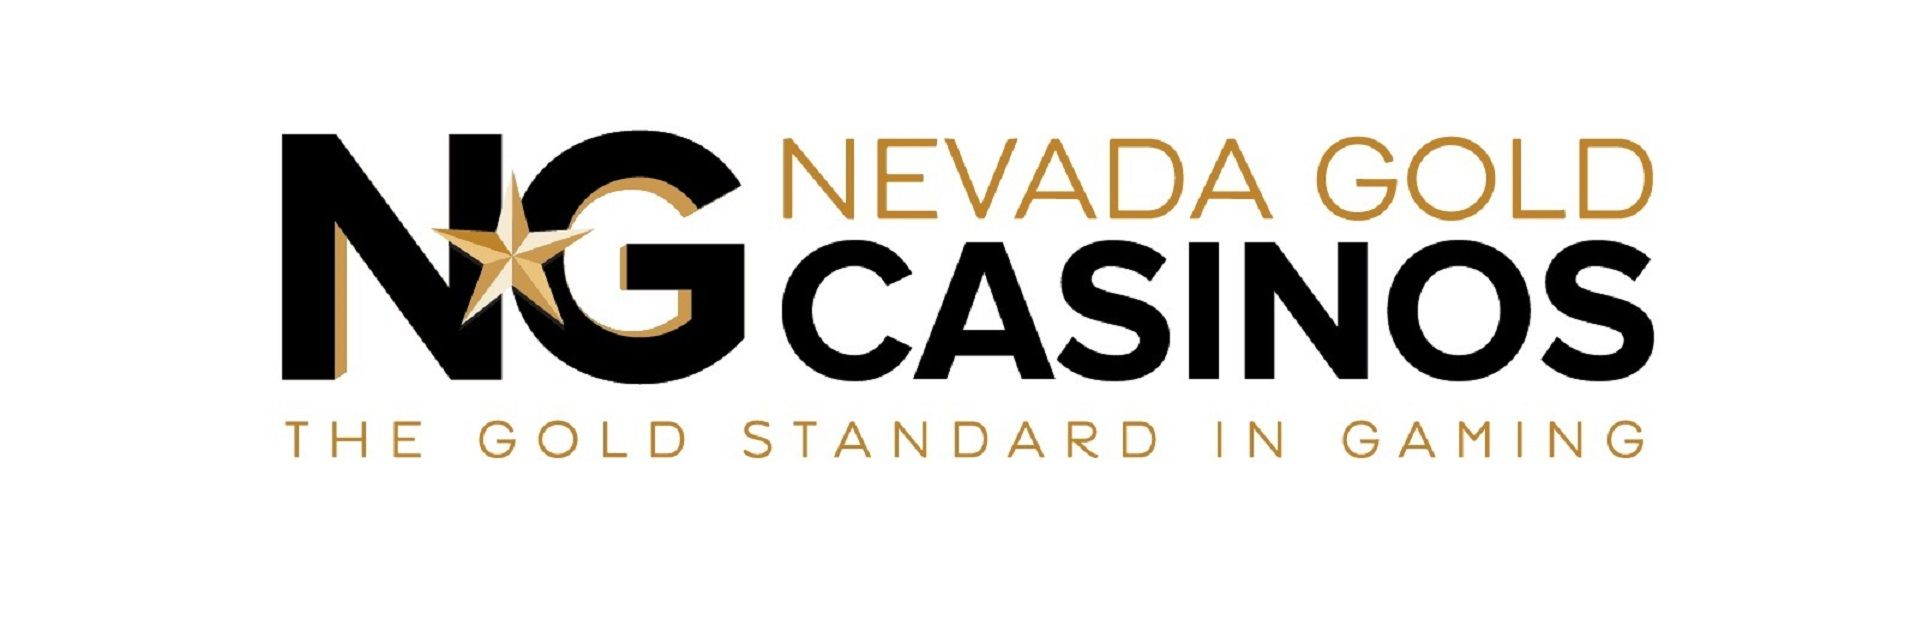 Nevada Gold Logo.jpg